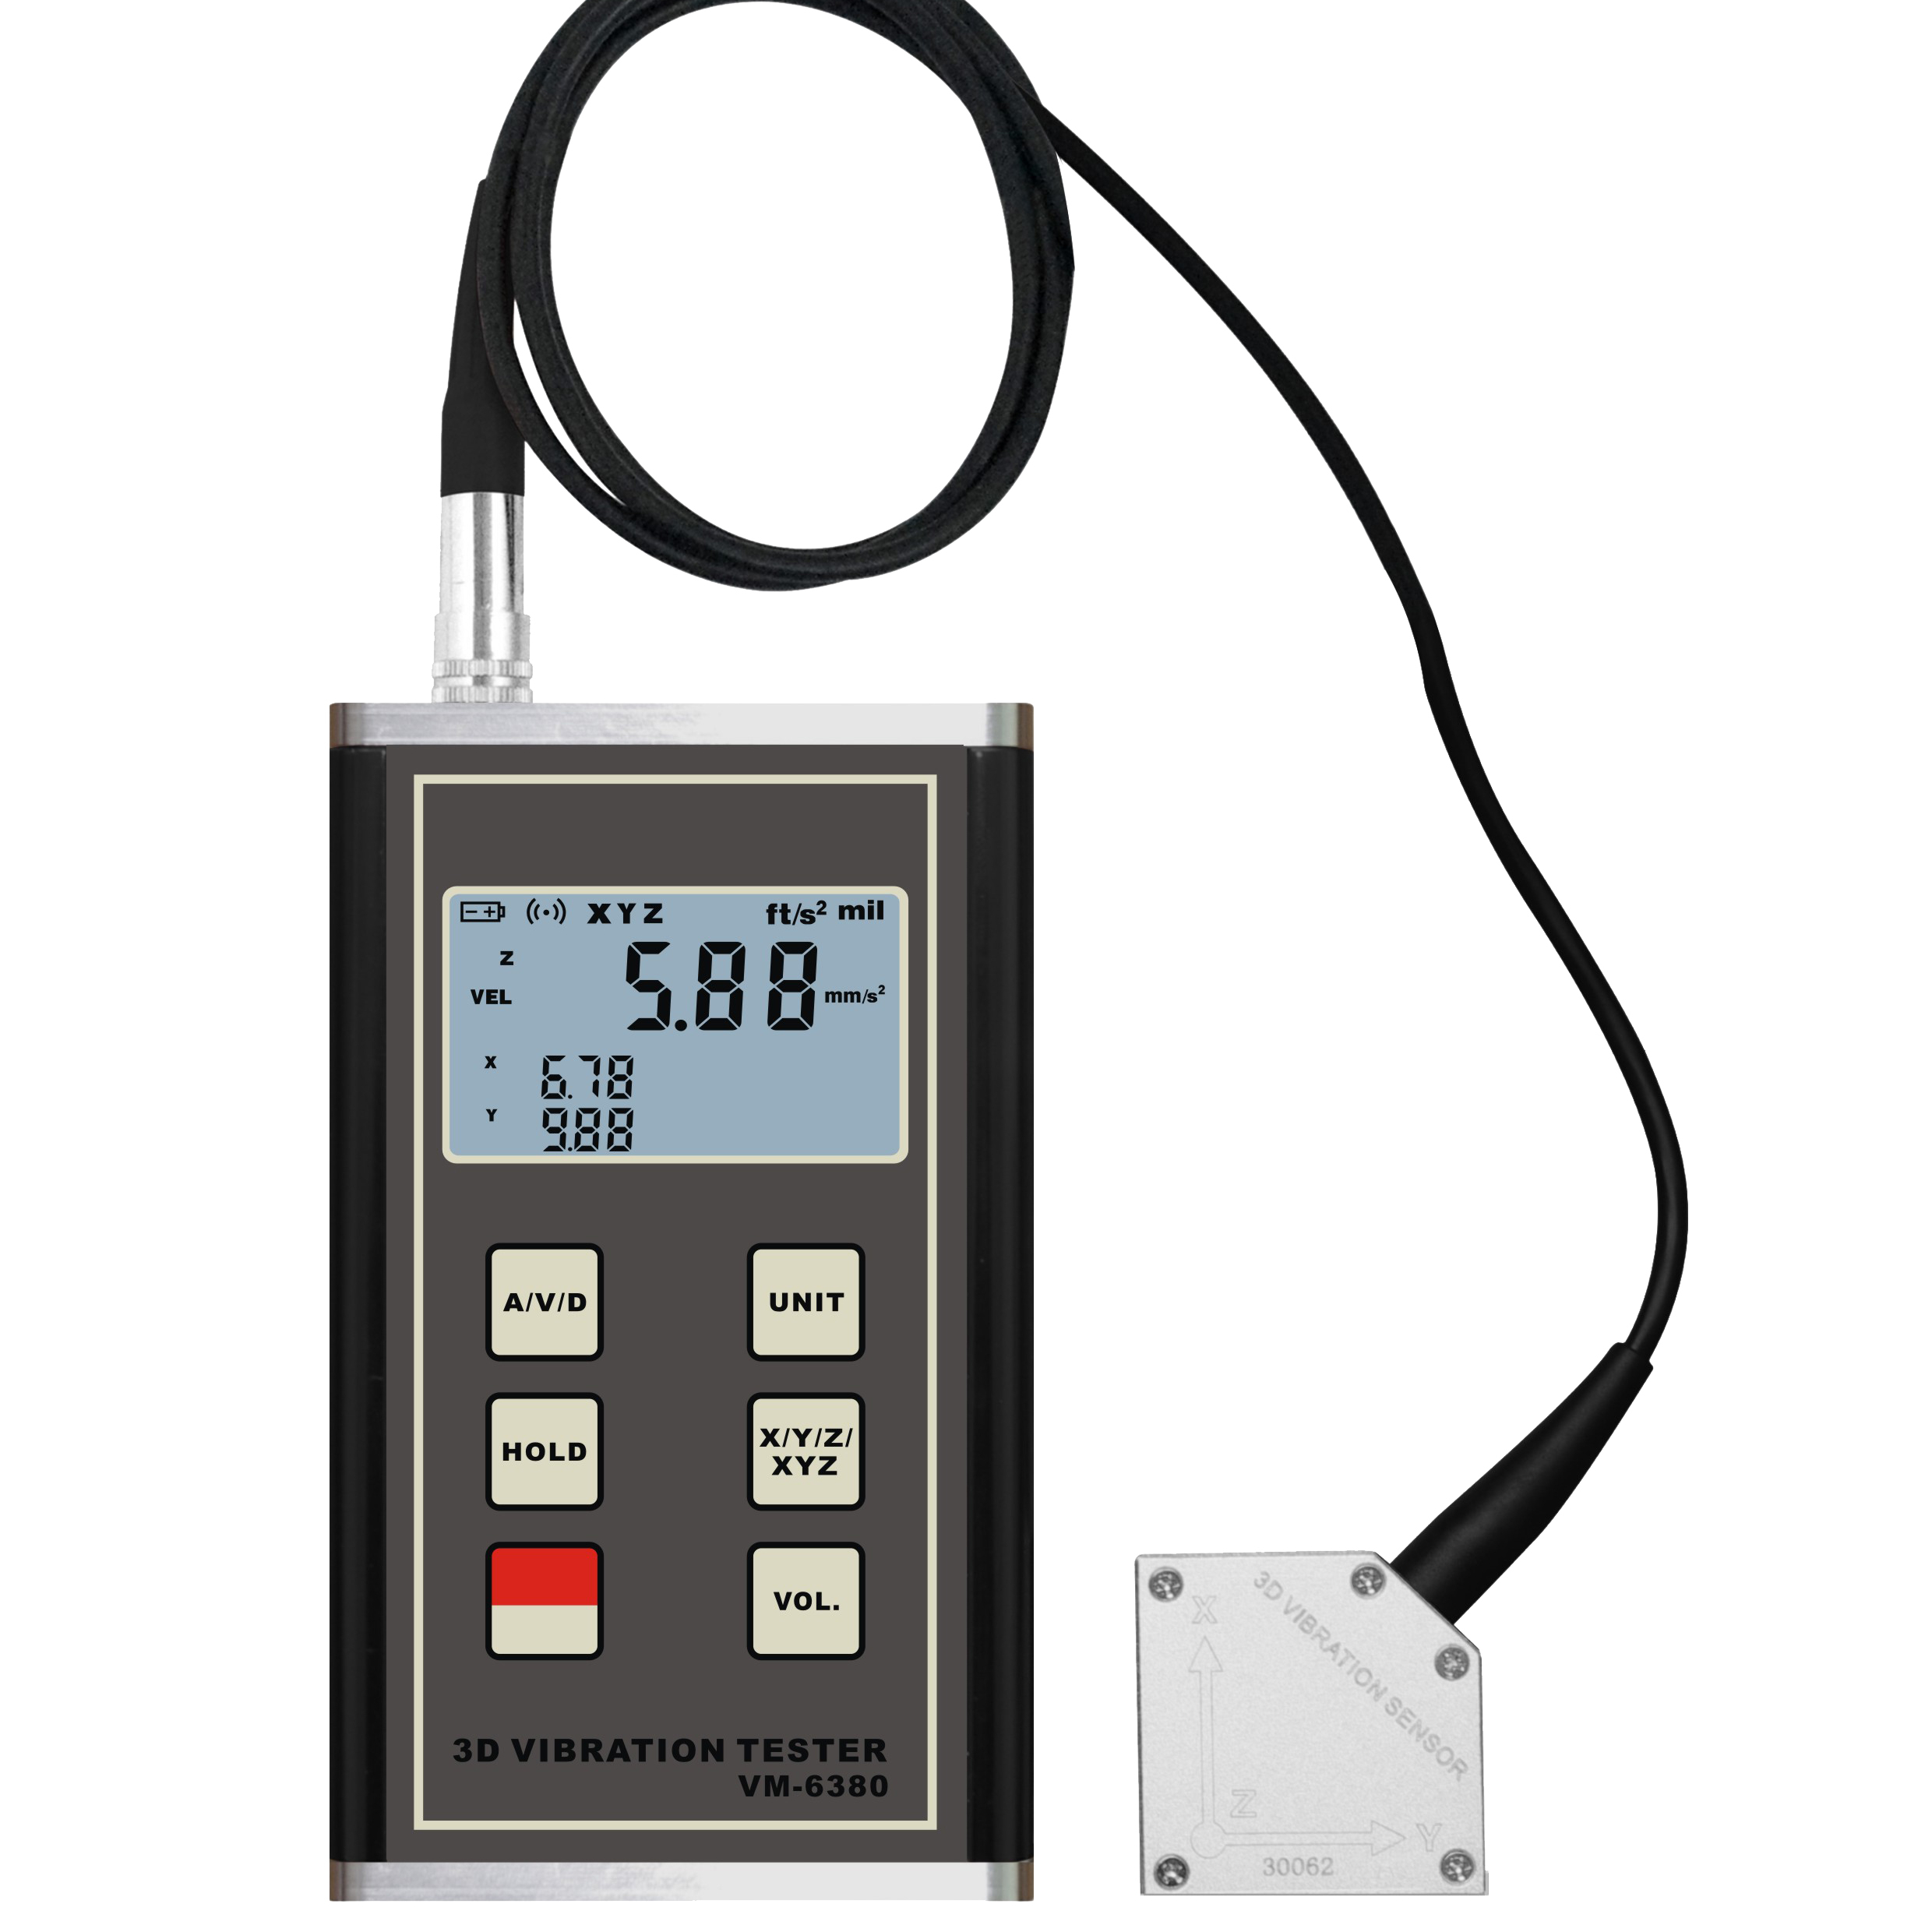 LANDTEK New Vibration Meter VM-6380 for <strong>3</strong>-Axis X <strong>Y</strong> Z Digital 3D Vibration hour meter